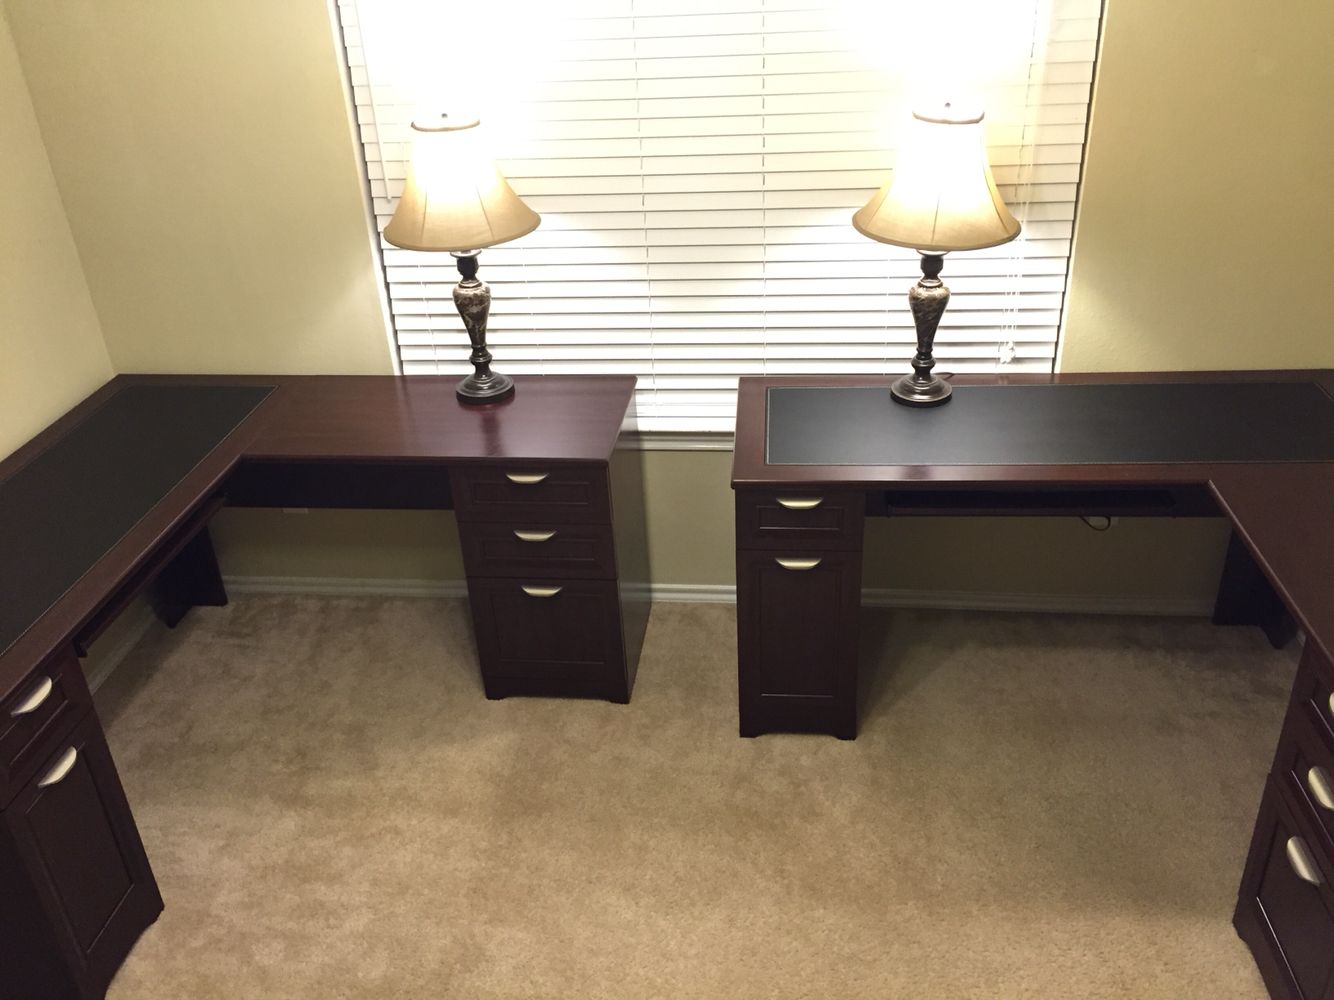 His And Hers Home Office Two L Shaped Desk From Office Depot Turned Out Good For Us Sadly Not